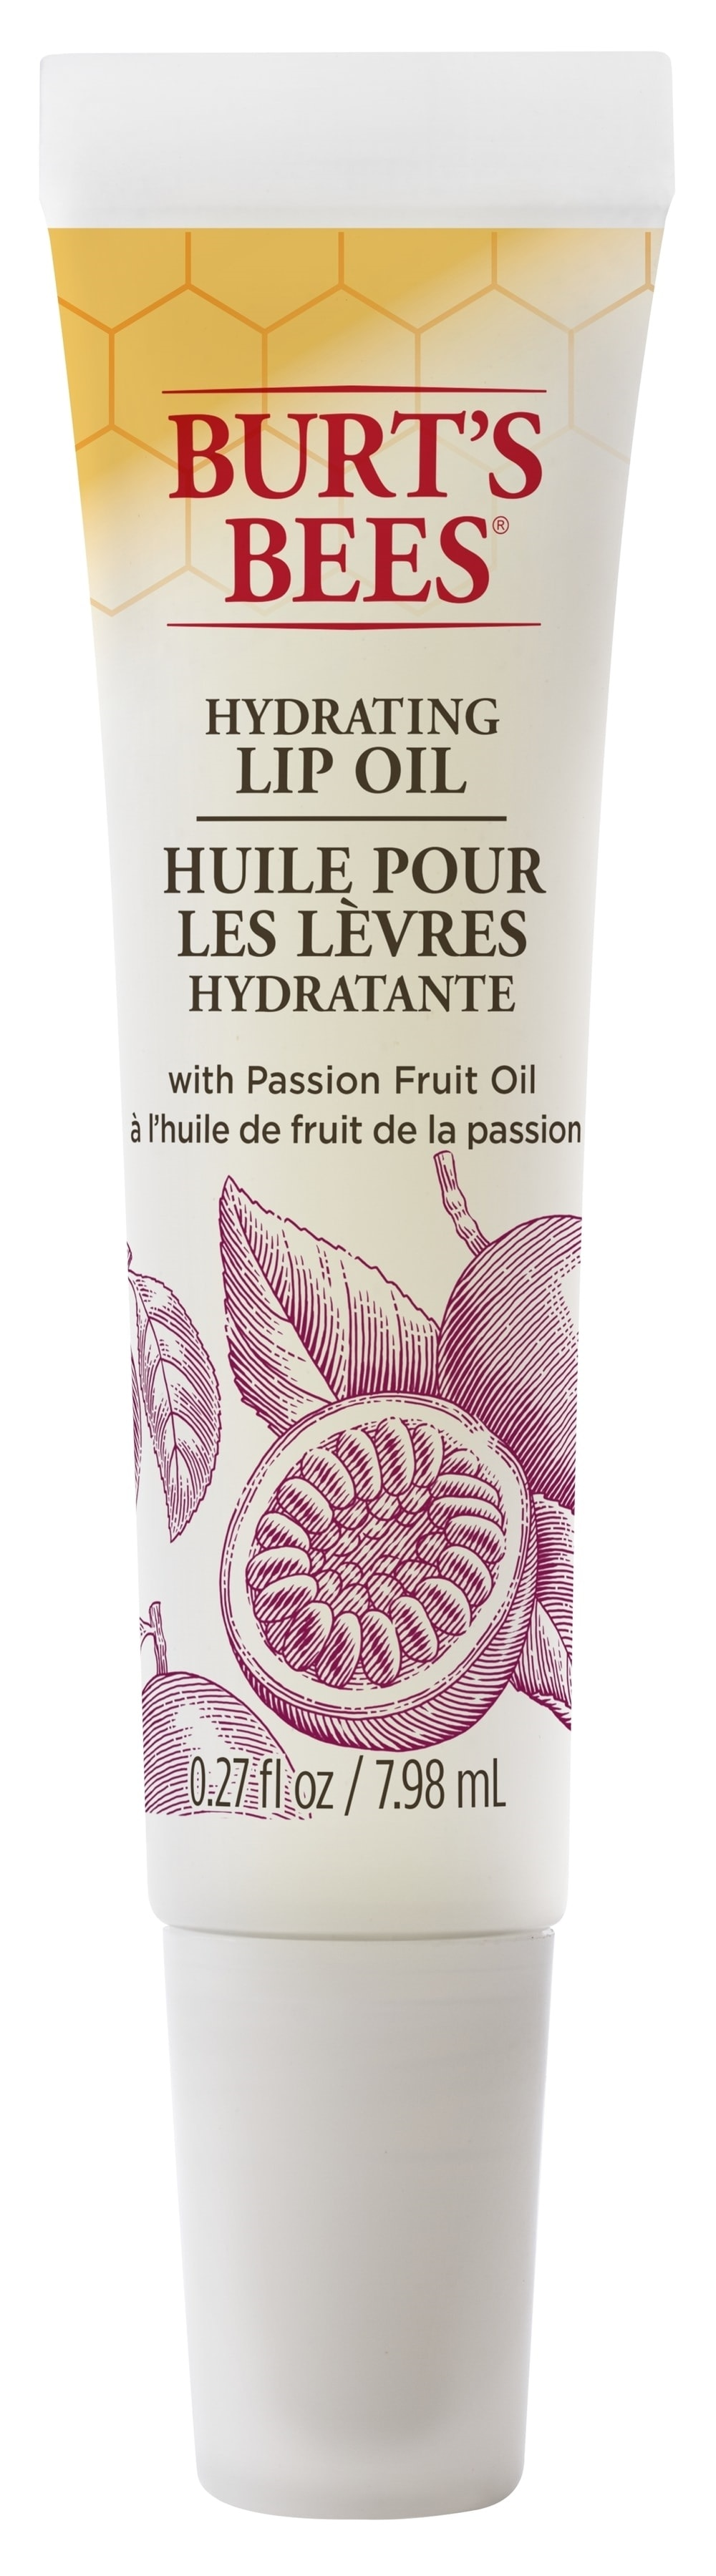 Passion Fruit Hydrating Lip Oil 7.98ml